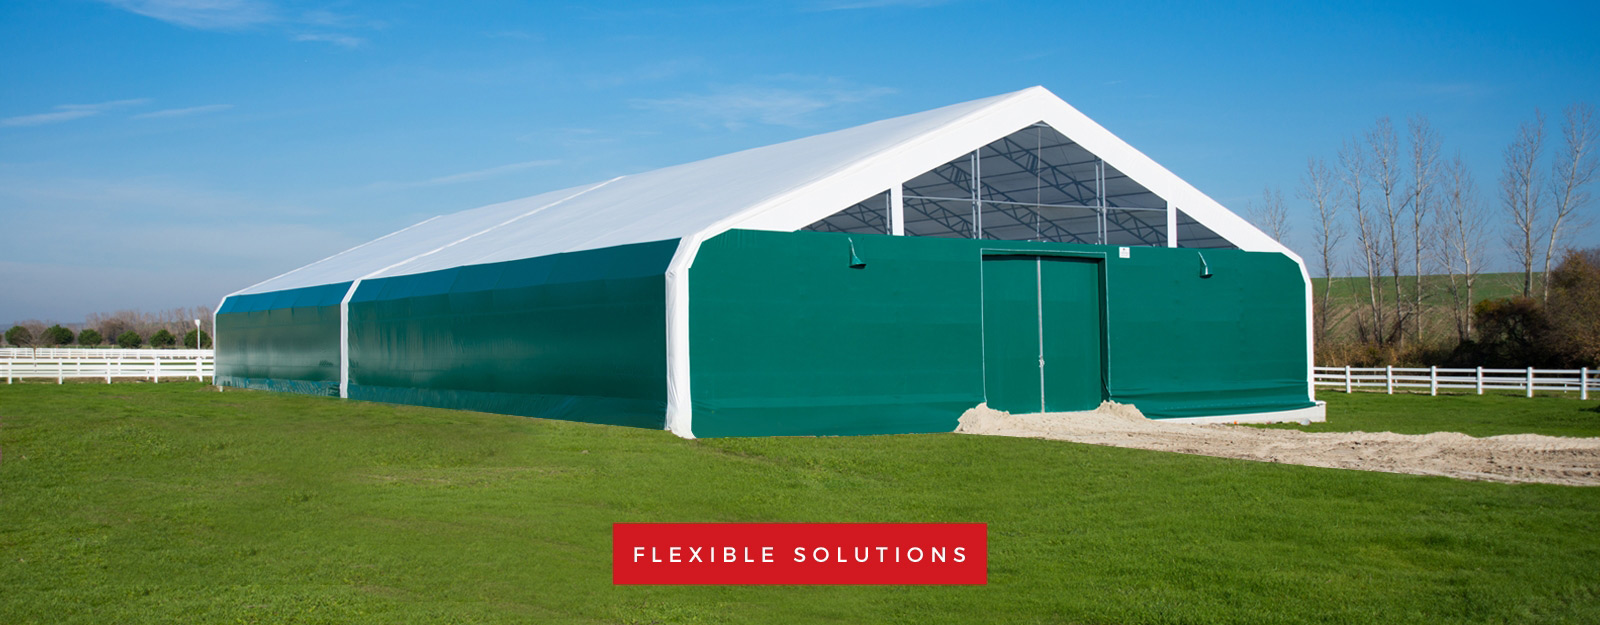 Basboga Tent and Tarpaulin Flexible Solutions